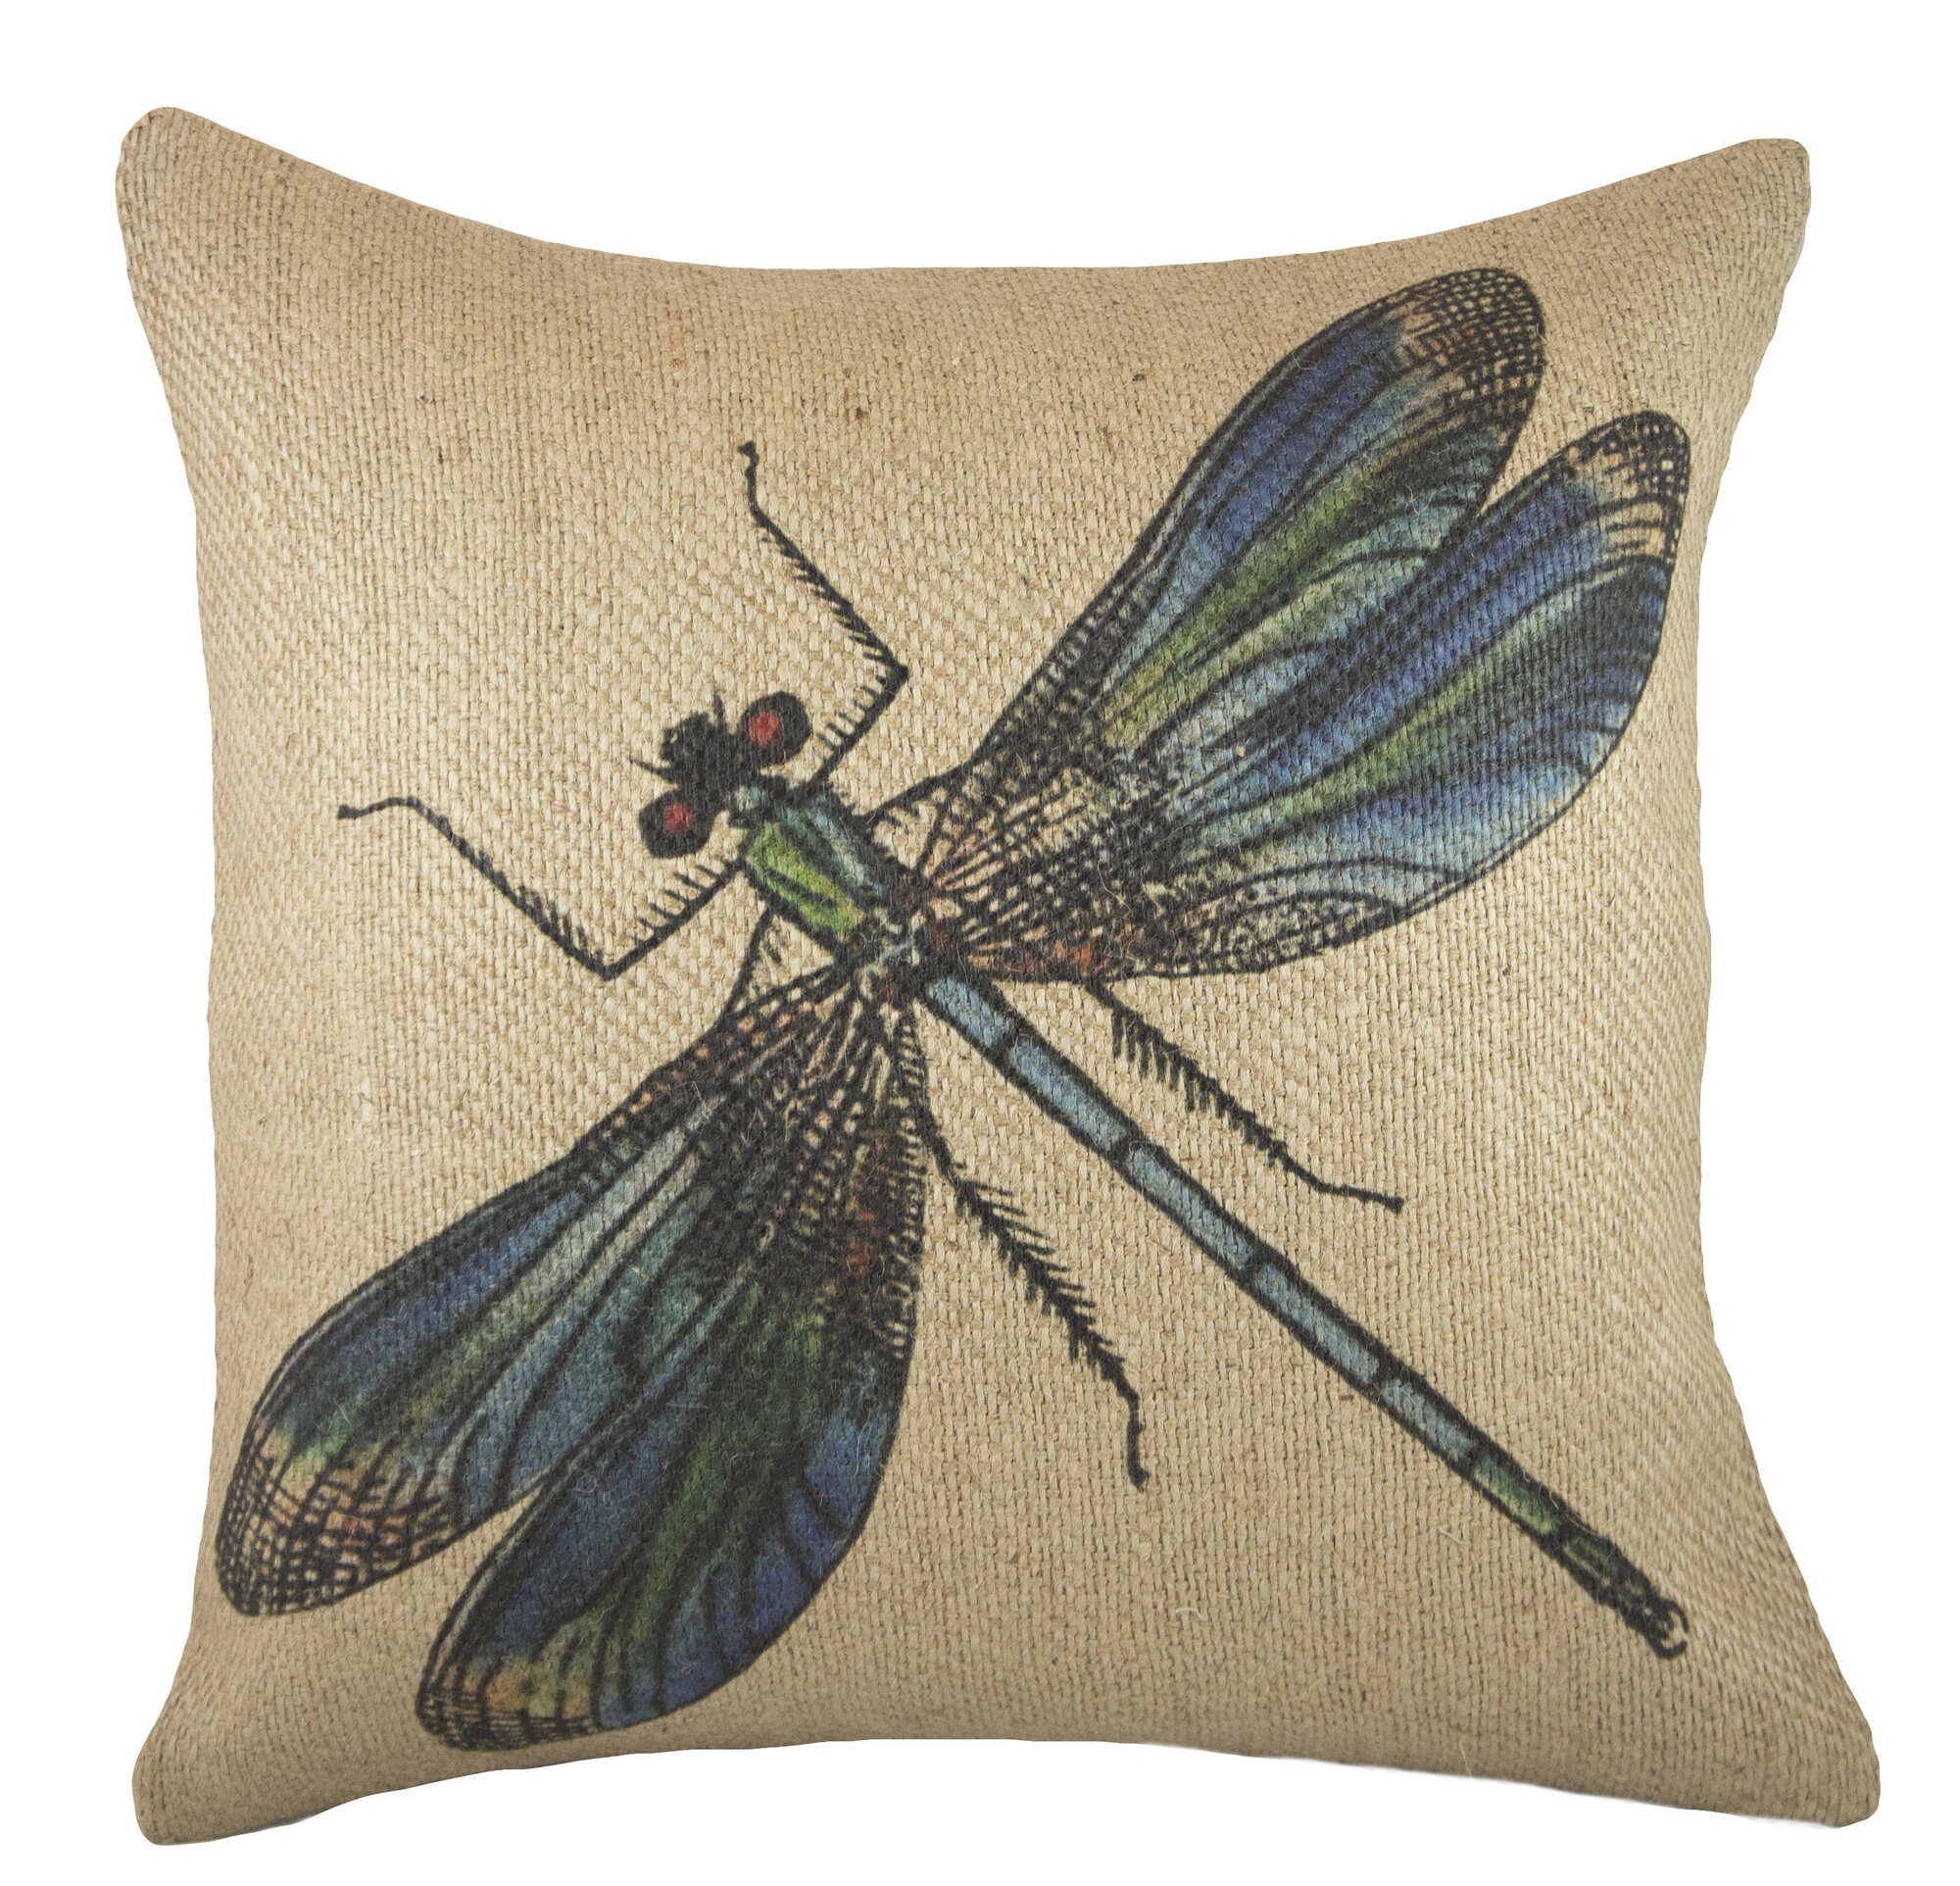 Throw Pillow With Dragonfly : TheWatsonShop Dragonfly Burlap Throw Pillow eBay